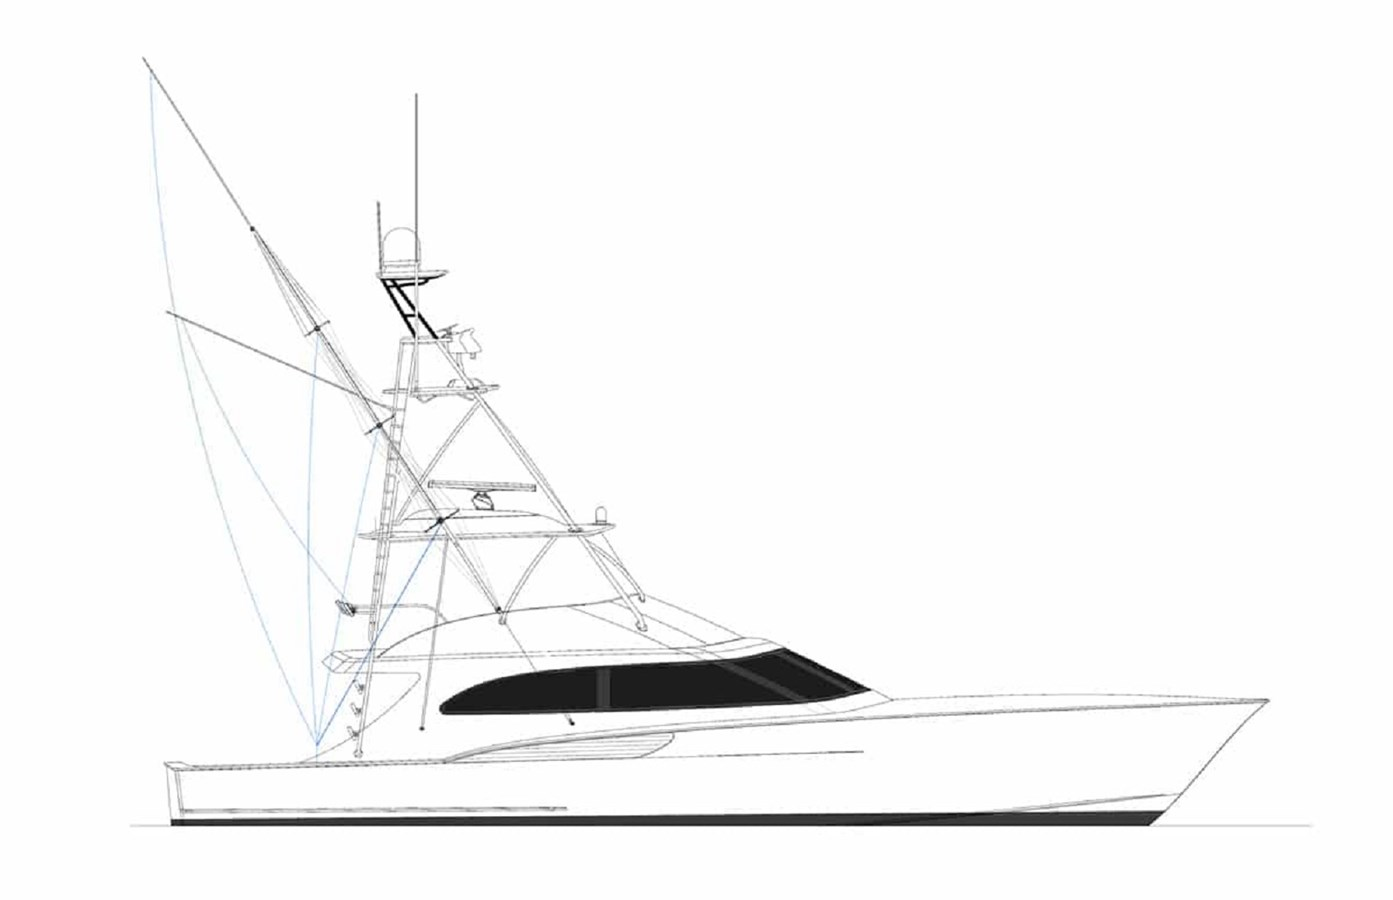 JBBW Hull 65 Under Construction - 64 JARRETT BAY For Sale